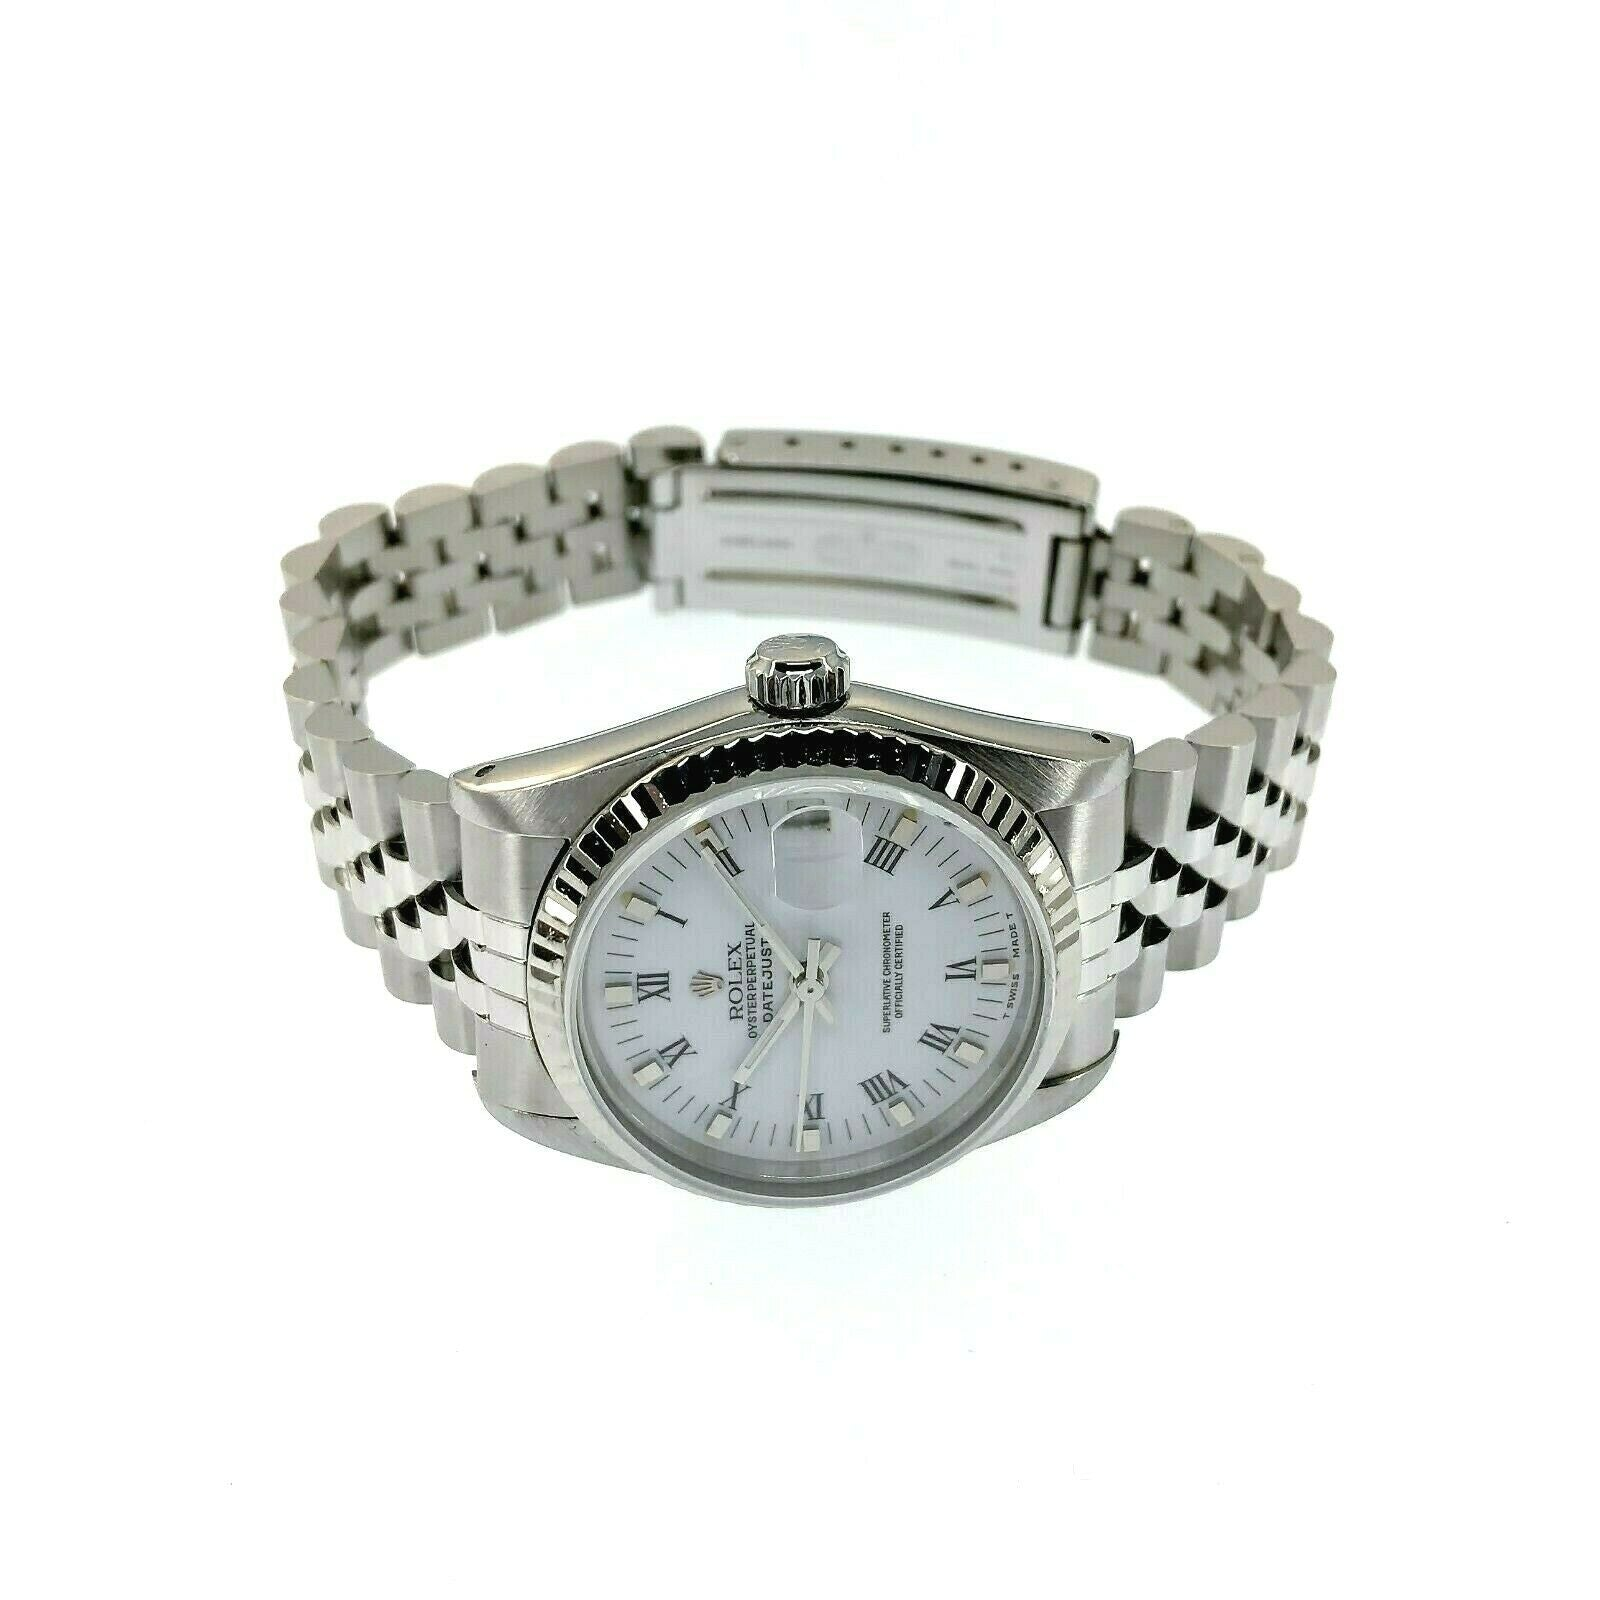 Rolex 31MM Lady's Jubilee Datejust Watch 18K White Gold/Stainless Ref # 68274